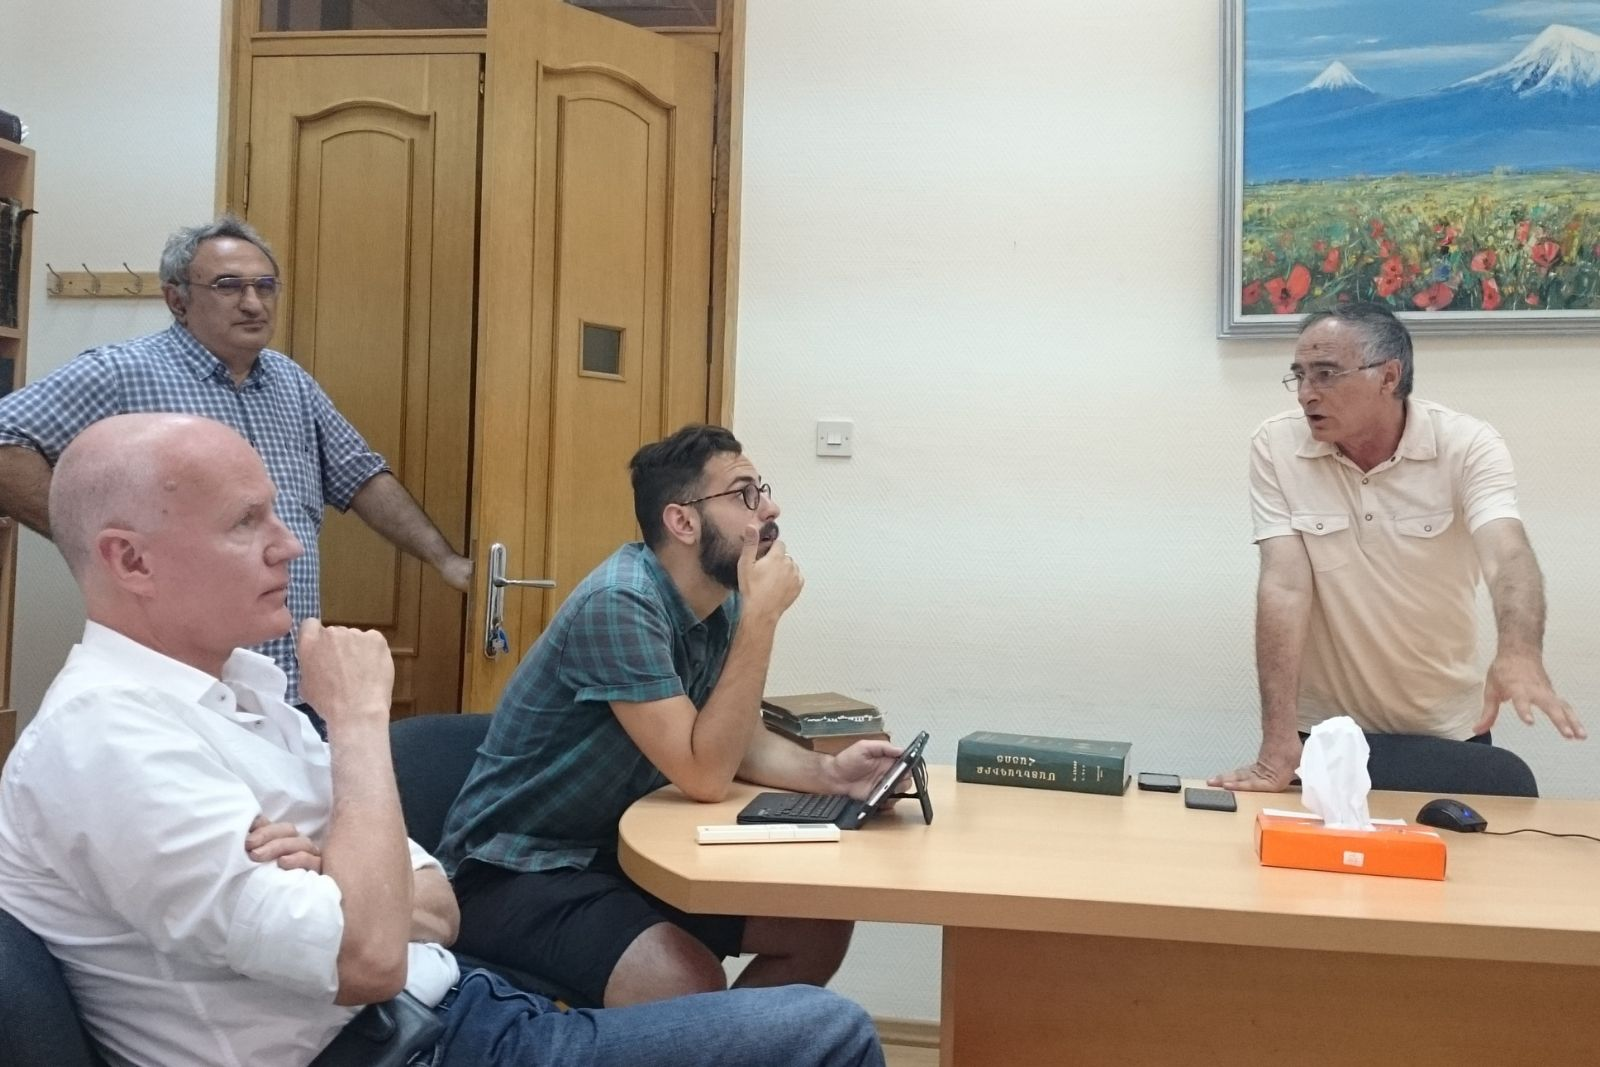 Merujan Karapetyan is lecturing about the history of Armenian printing to the participants of Armenian Studies summer school 2016 John Winter and Nicholas Matheou.